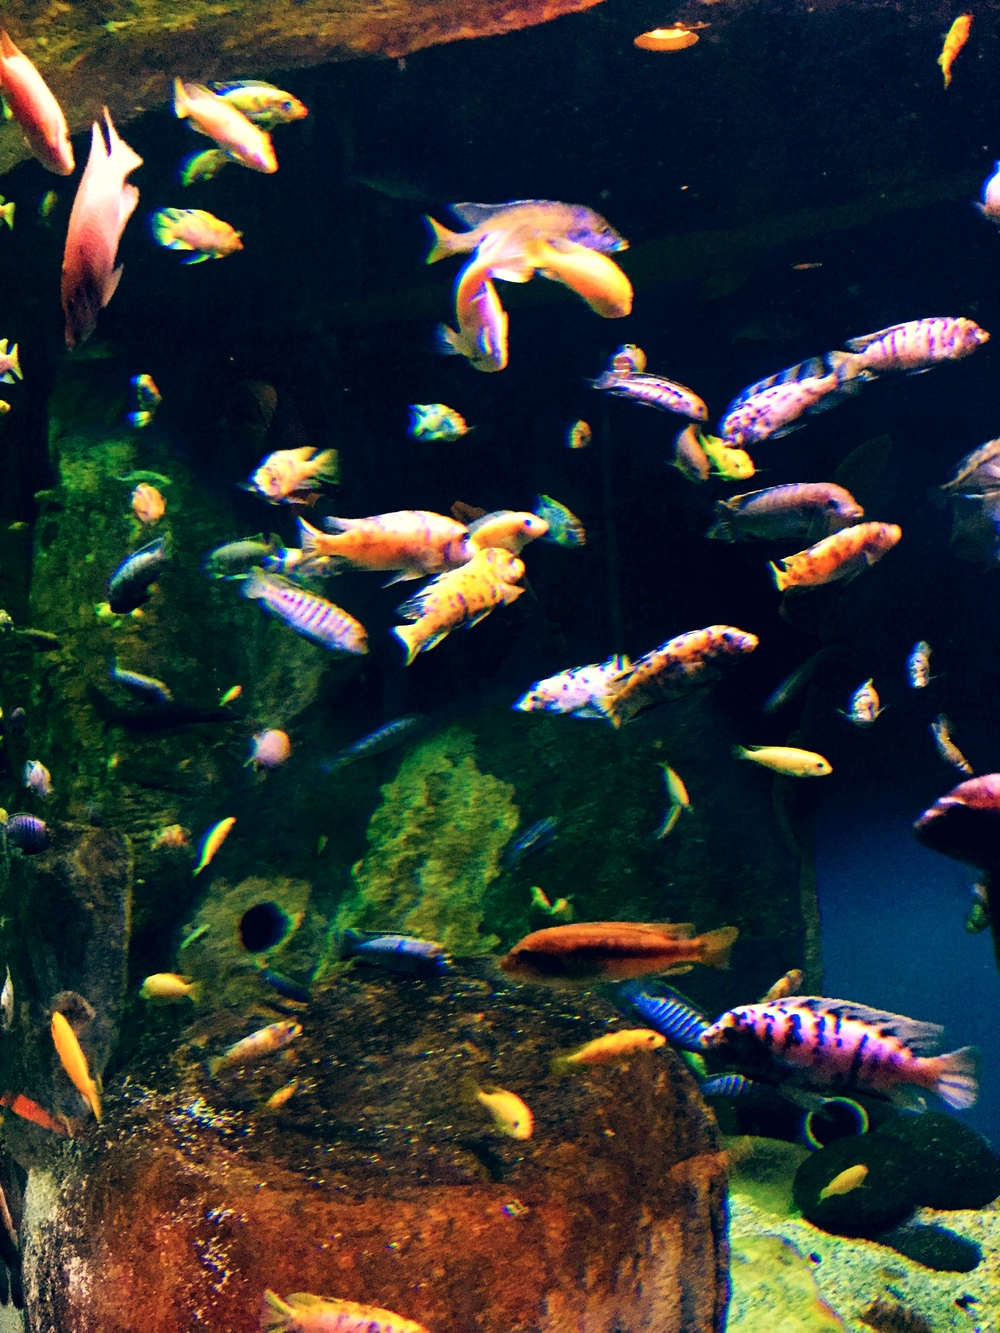 Tank of fish! The clown fish is here... somewhere. During the summer the aquarium is free from 4:00-5:00pm on Fridays